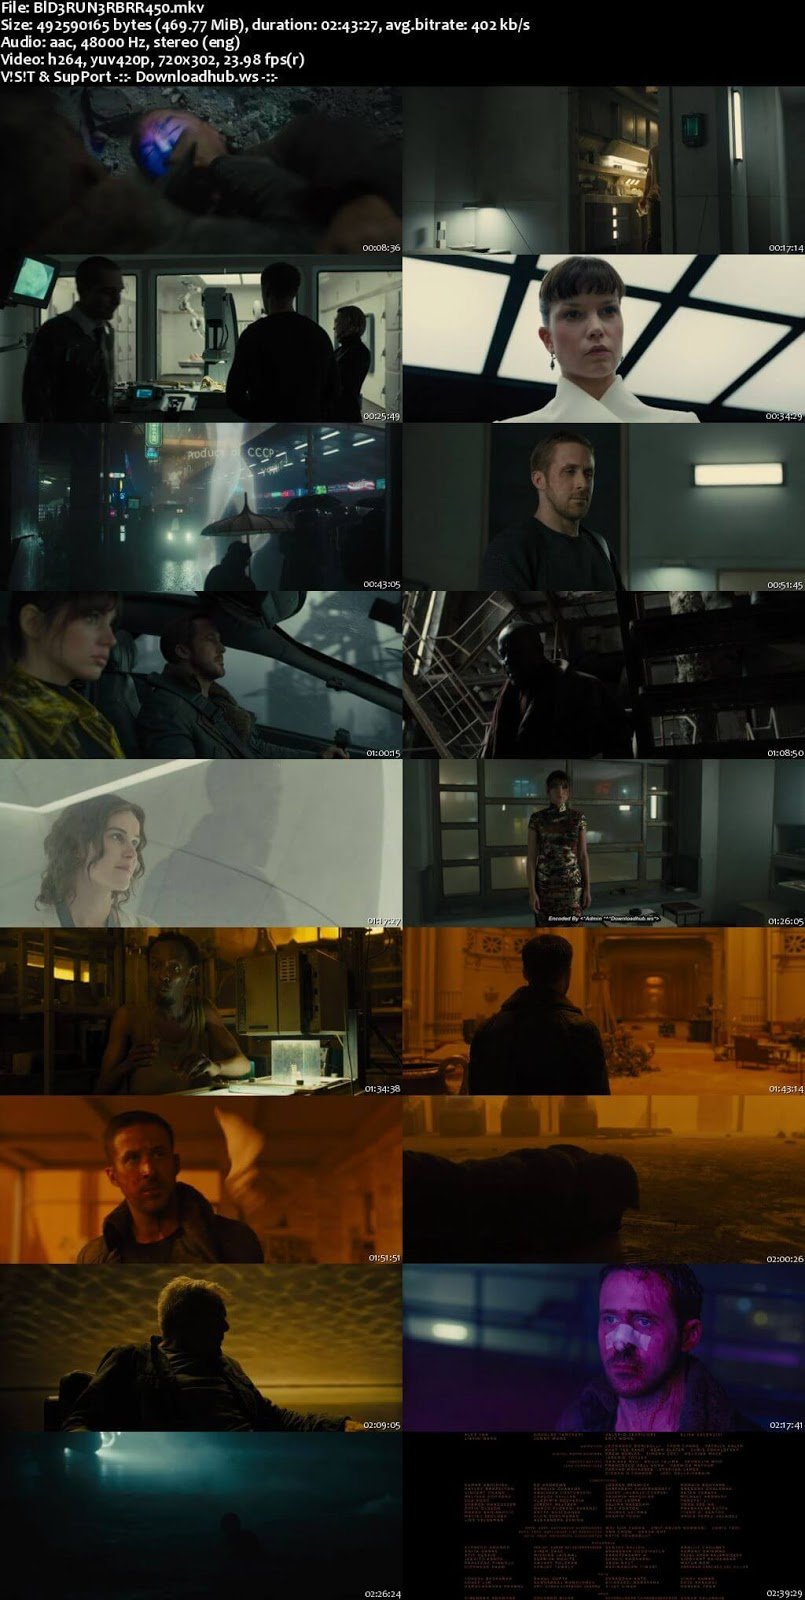 Blade Runner 2049 2017 English 480p BRRip ESubs